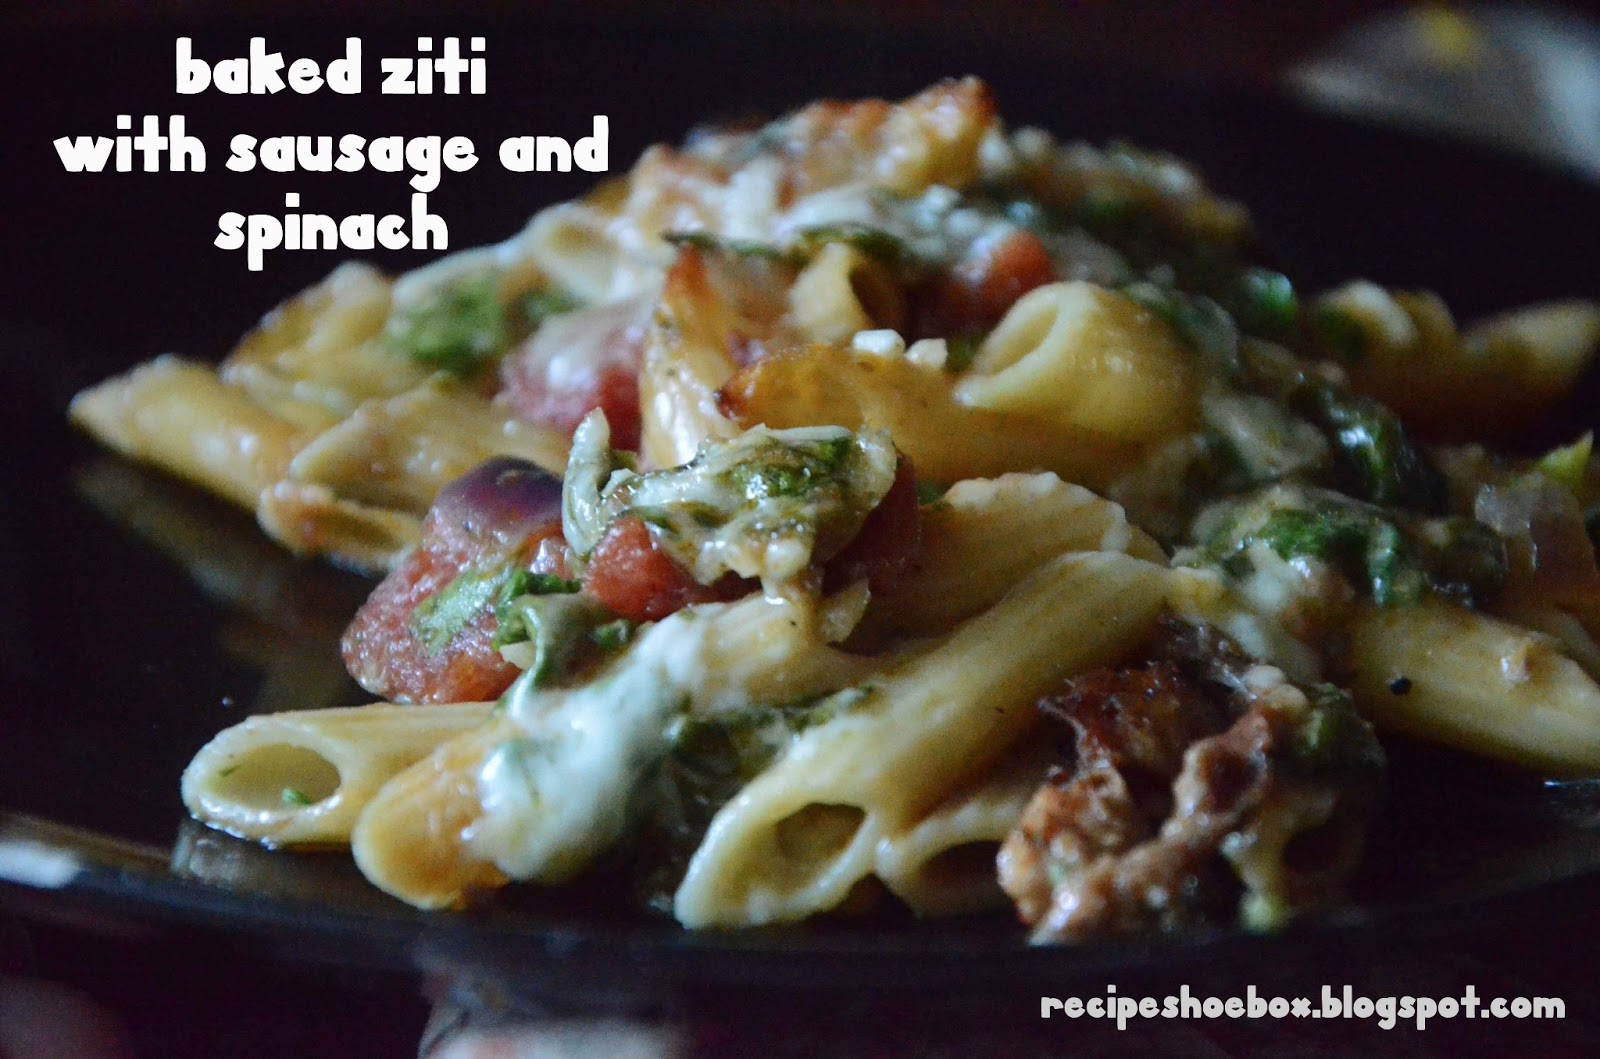 Recipe Shoebox: Baked Ziti with Spinach and Sausage